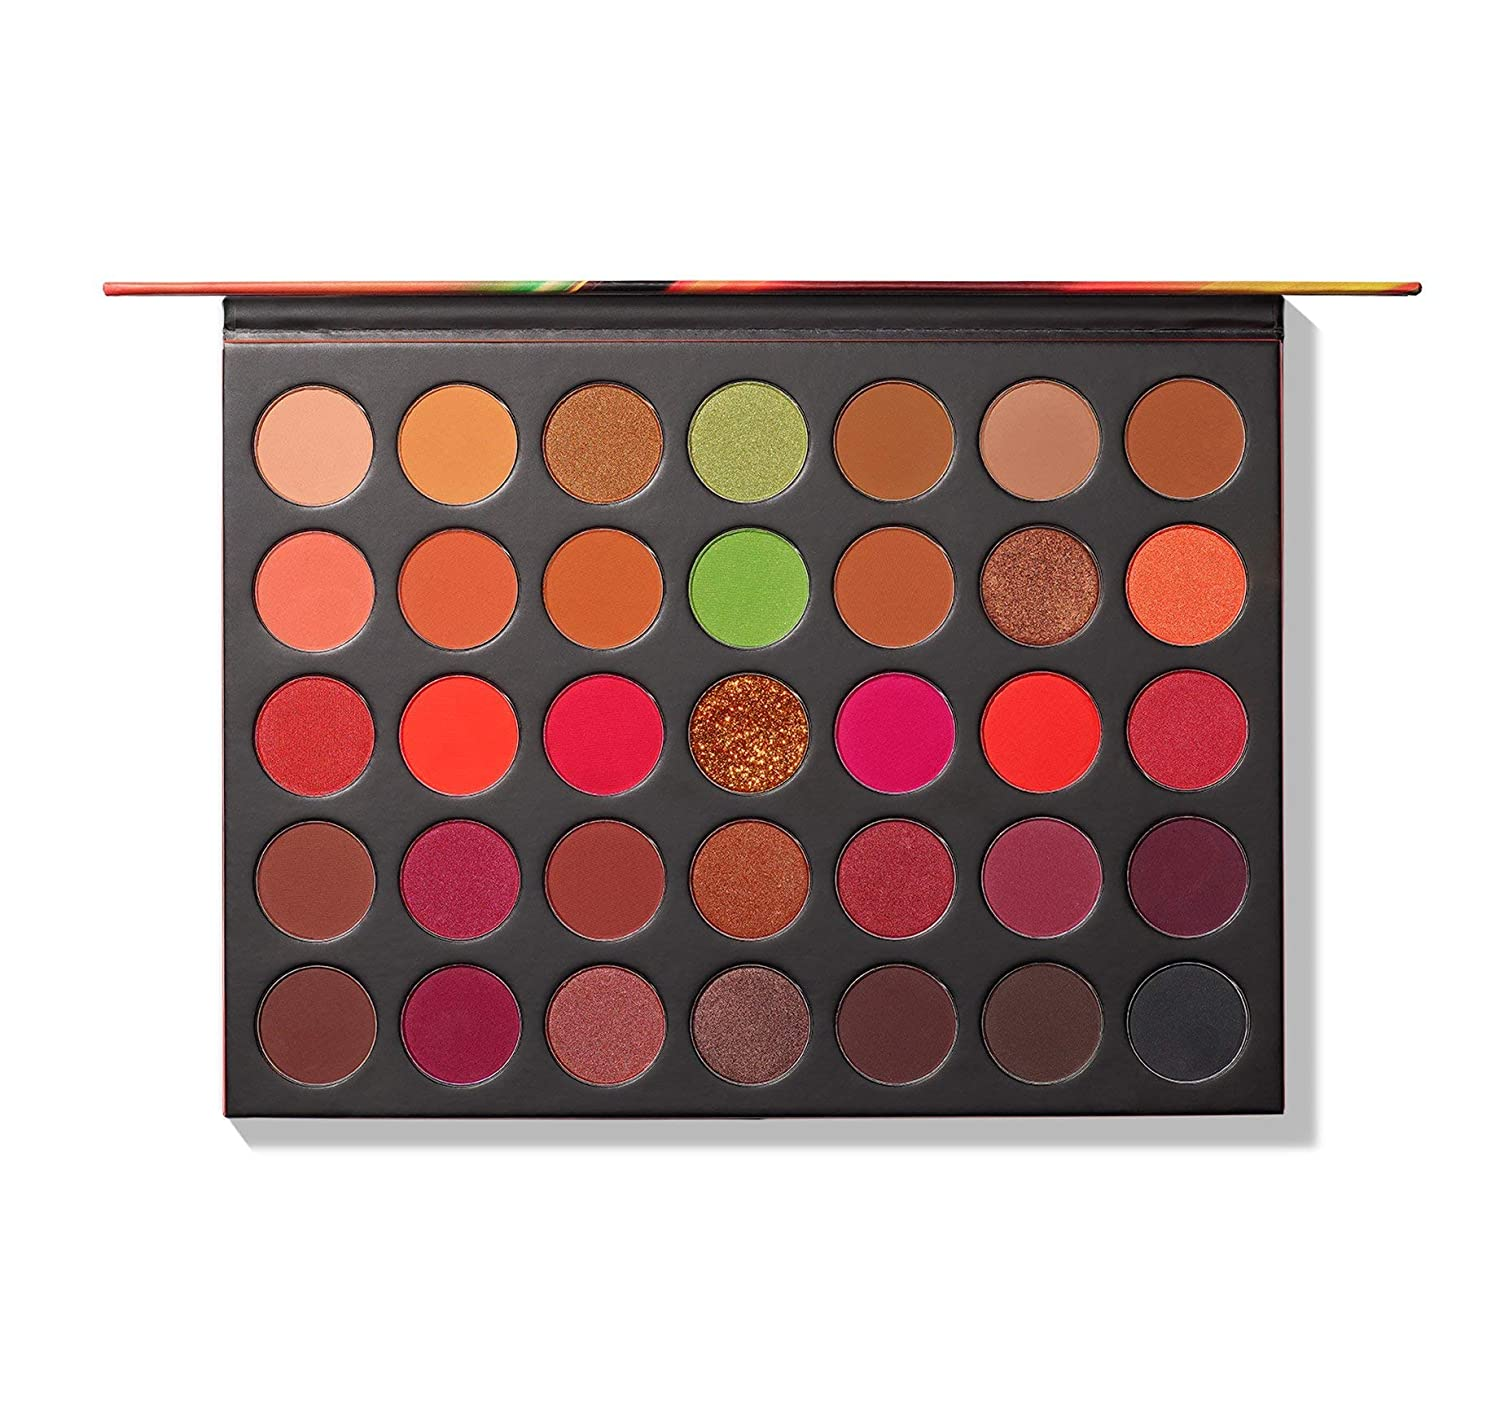 Popular 5% OFF products 35O3 FIERCE BY ARTISTRY NATURE PALETTE